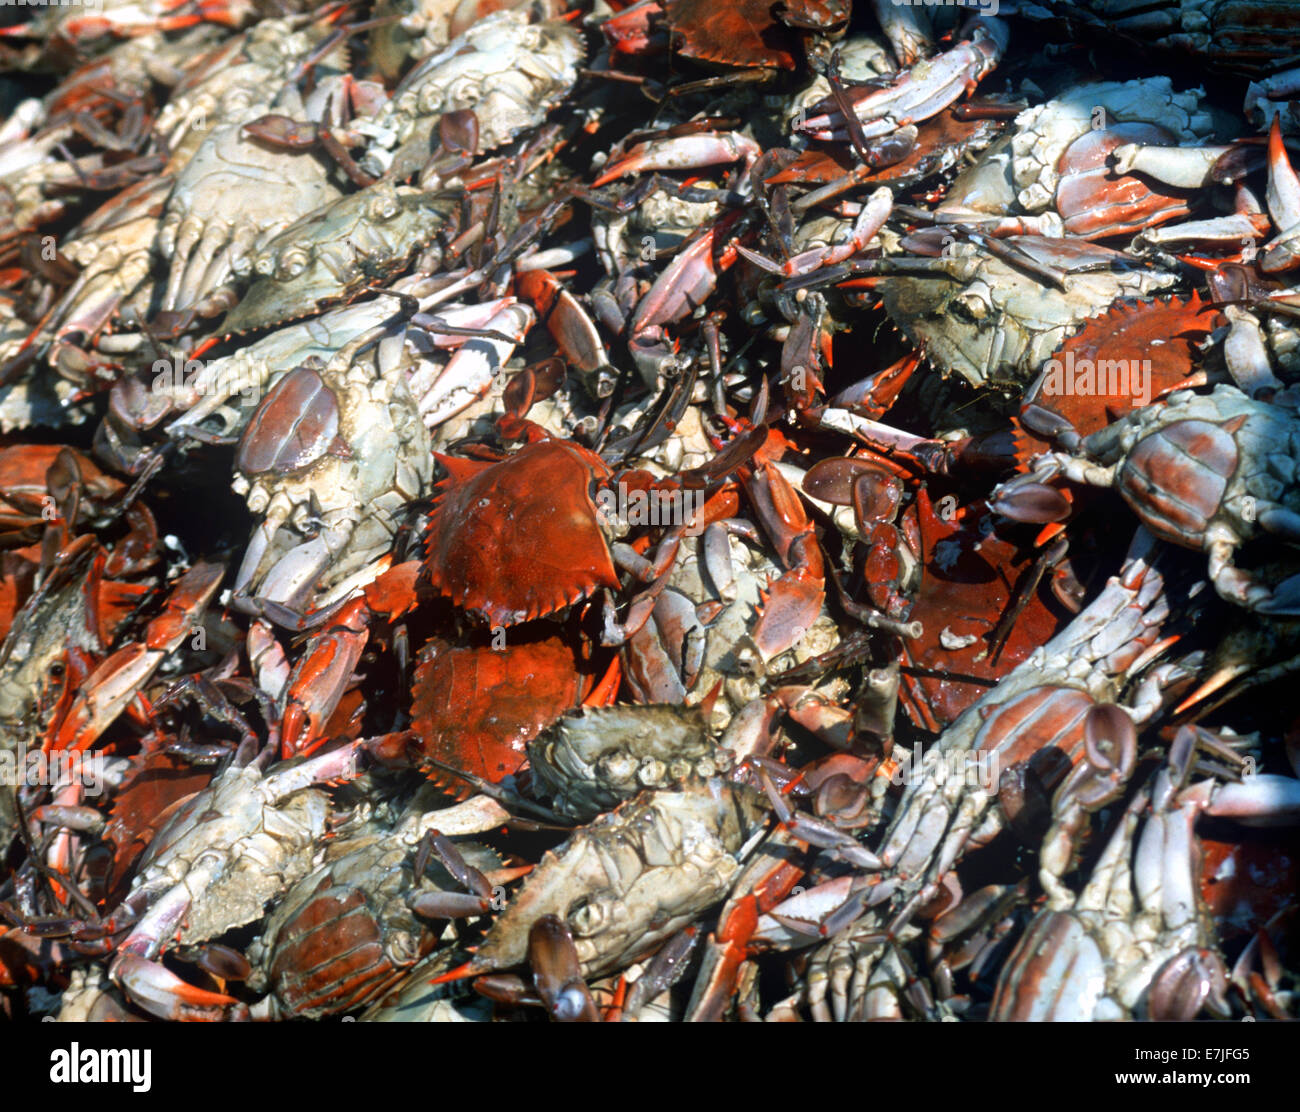 Crisfield, Hard Crab Derby, Eastern Shore, Maryland - Stock Image